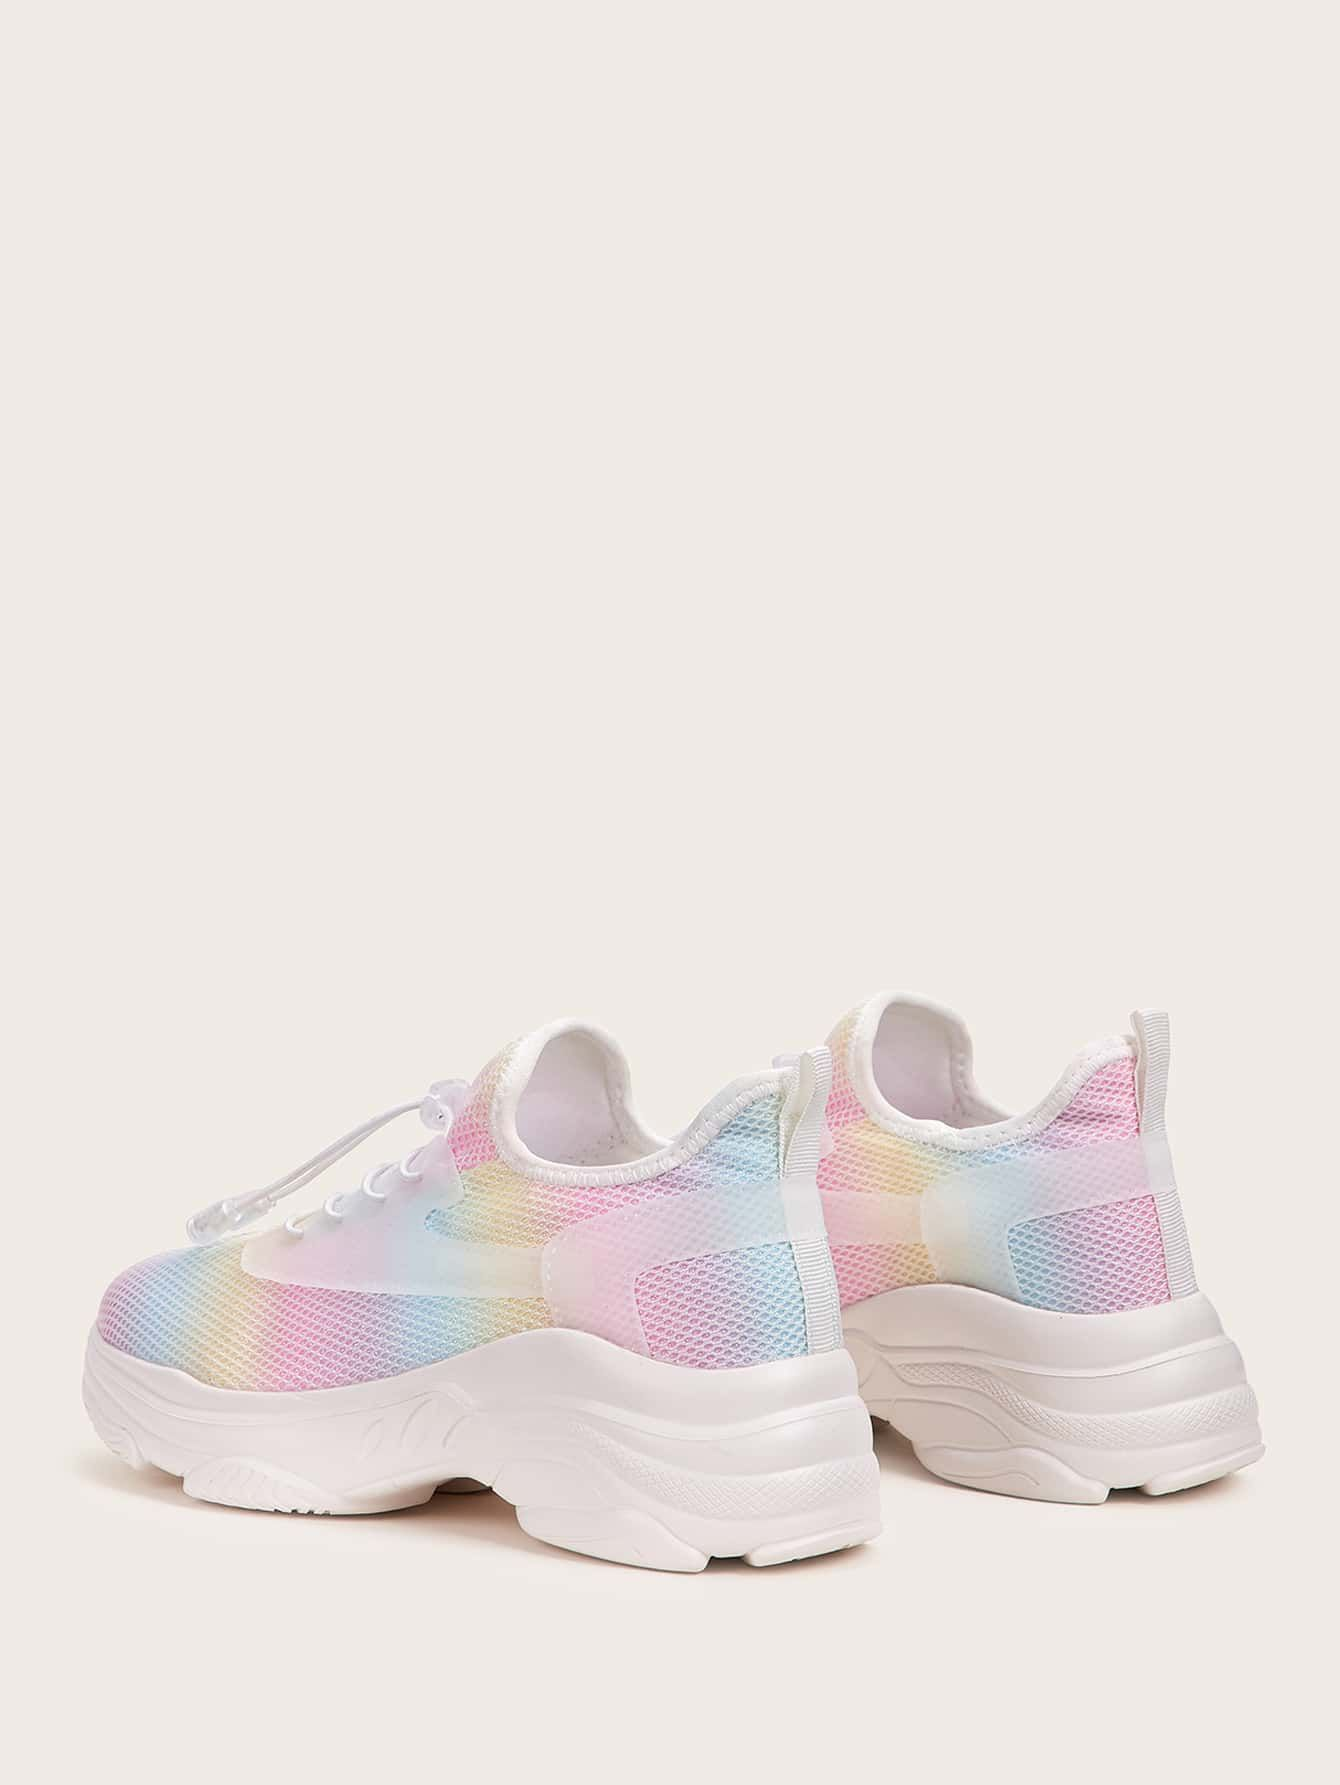 Ad: Tie Dye Lace-up Chunky Sneakers